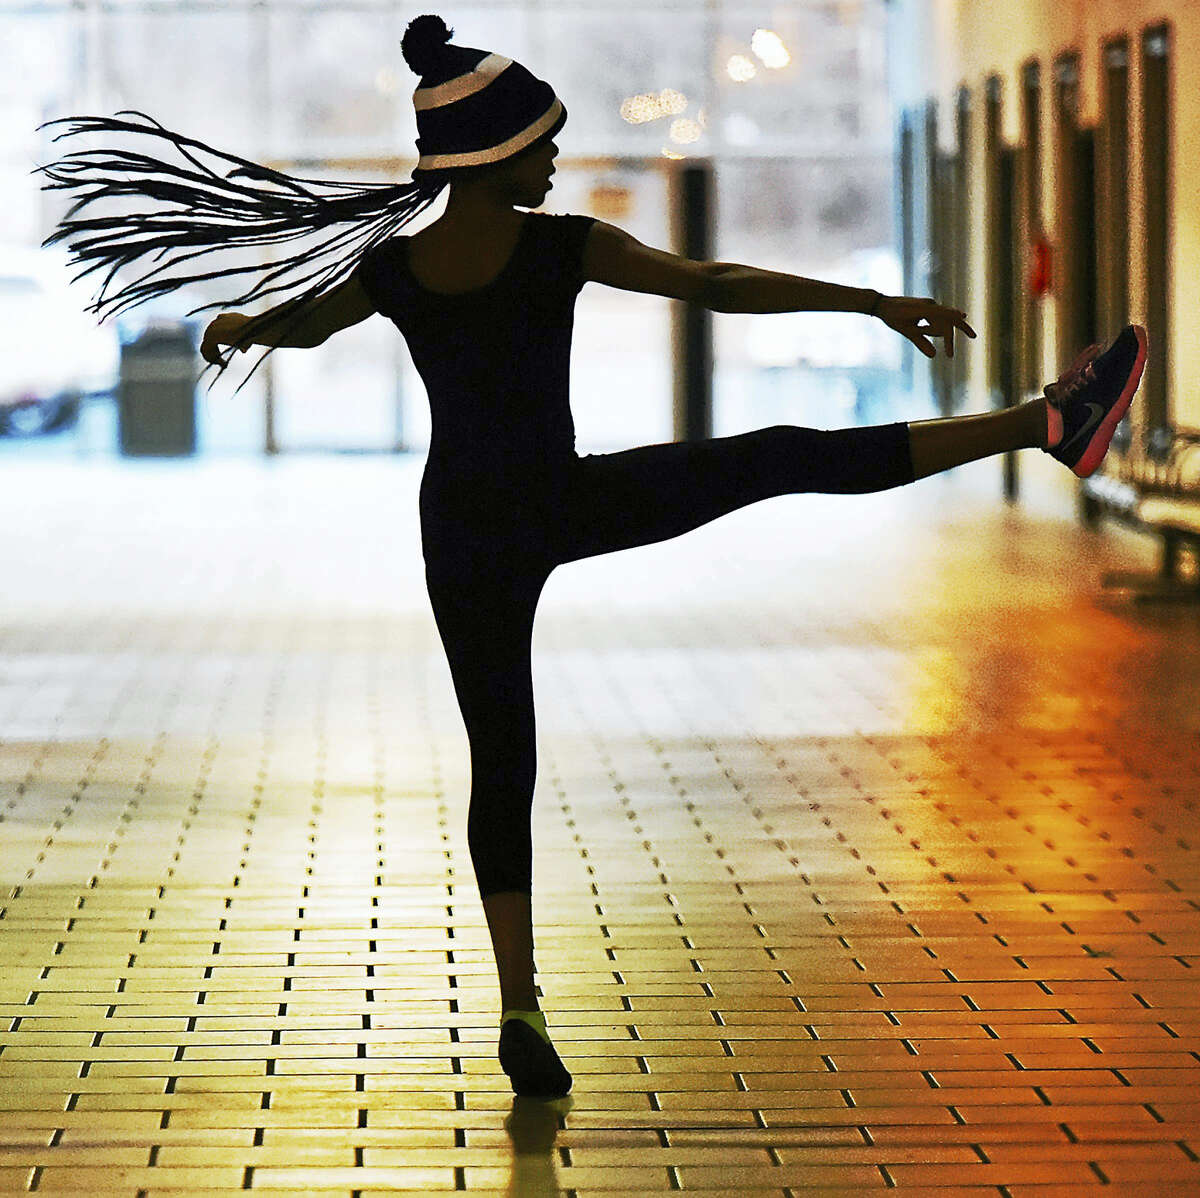 New Haven resident Teriah Brookshire, then 12, a member of the dance team at Elite Sounds of the Arts Academy practices her a la seconde turn for ballet class in 2016, in the hallway at Trolley Square at 1175 State Street in New Haven. Brookshire has been studying jazz, ballet, lyrical and hip hop for five years under director Simone C.Darby. (Catherine Avalone - New Haven Register)